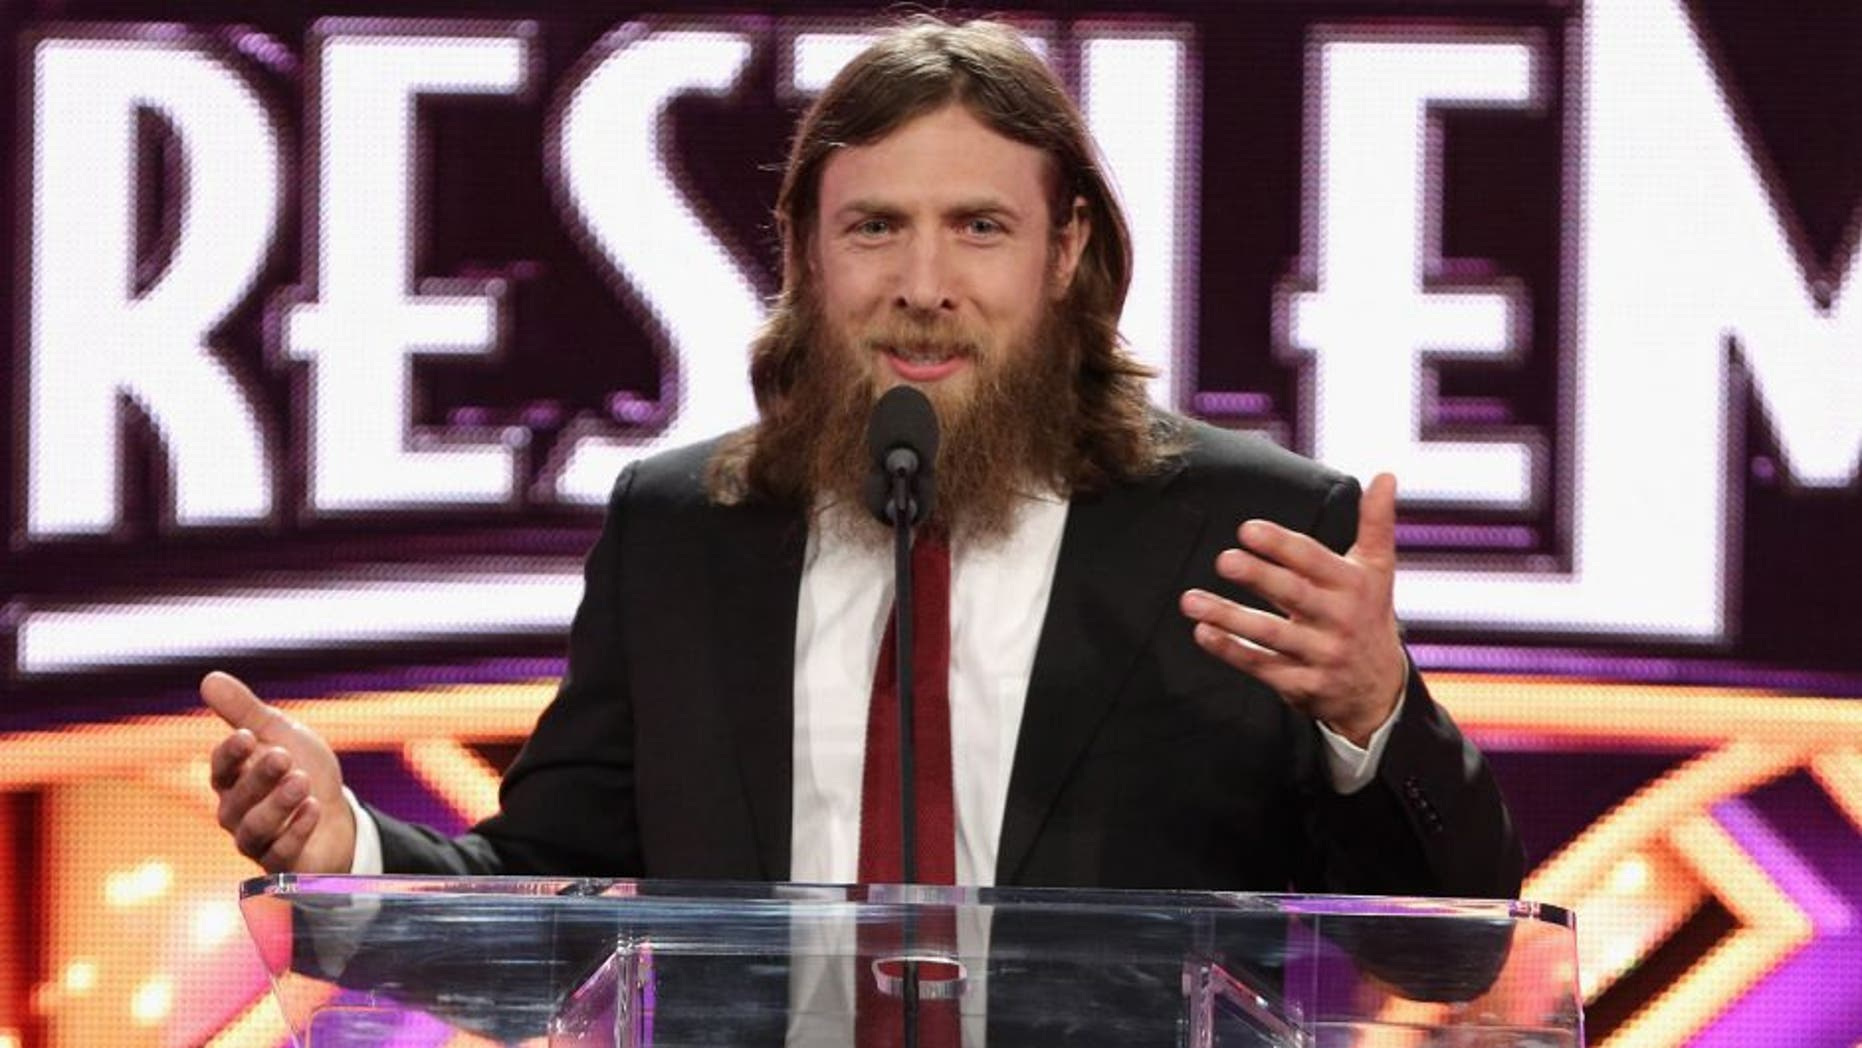 NEW YORK, NY - APRIL 01: Professional wrestler Daniel Bryan attends the WrestleMania 30 press conference at the Hard Rock Cafe New York on April 1, 2014 in New York City. (Photo by Andrew Toth/FilmMagic)